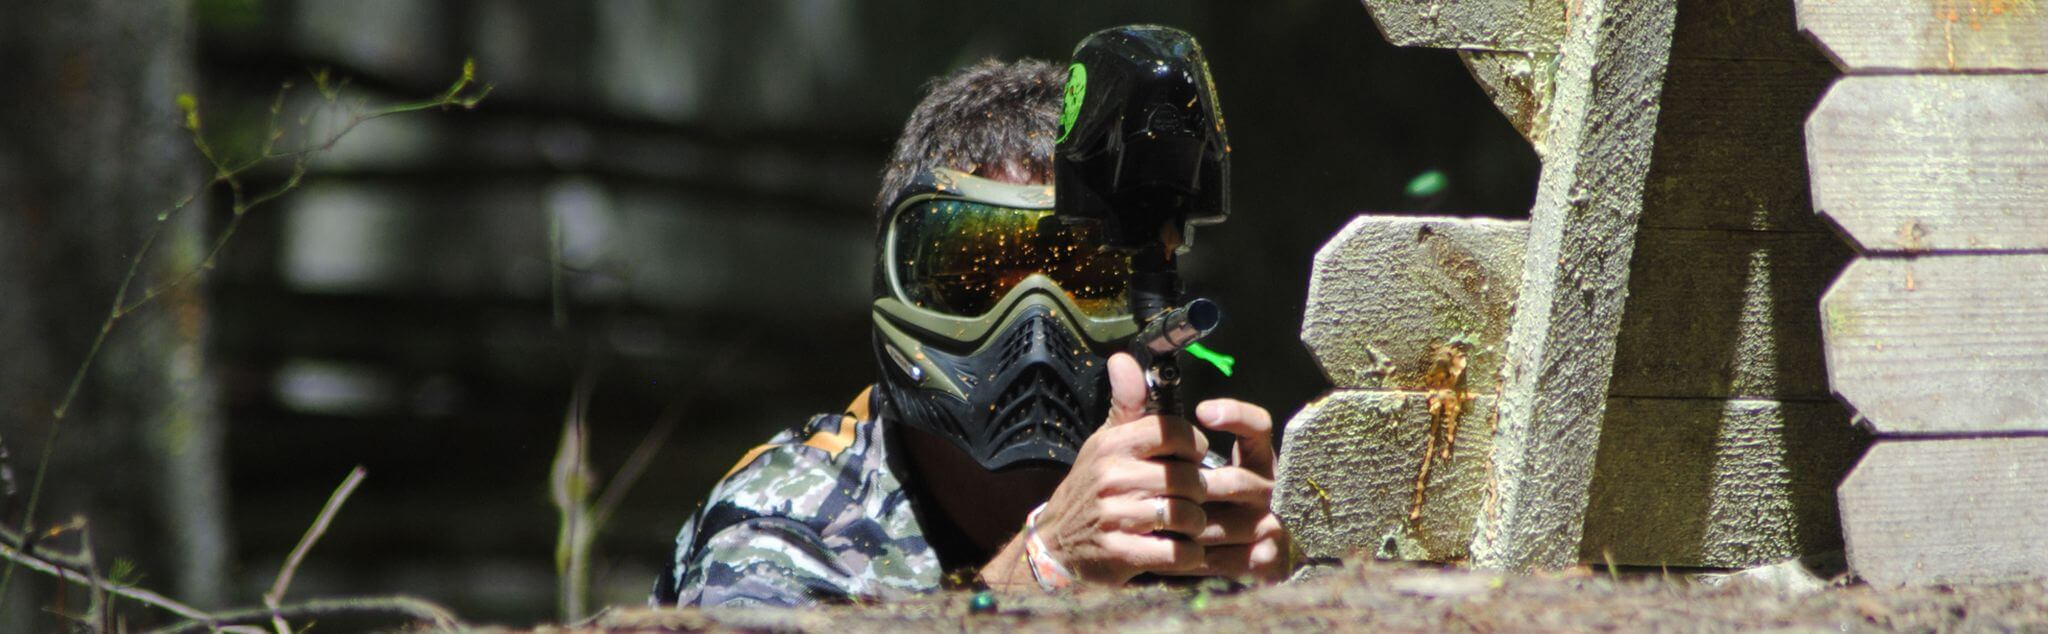 Paintball en Valladolid